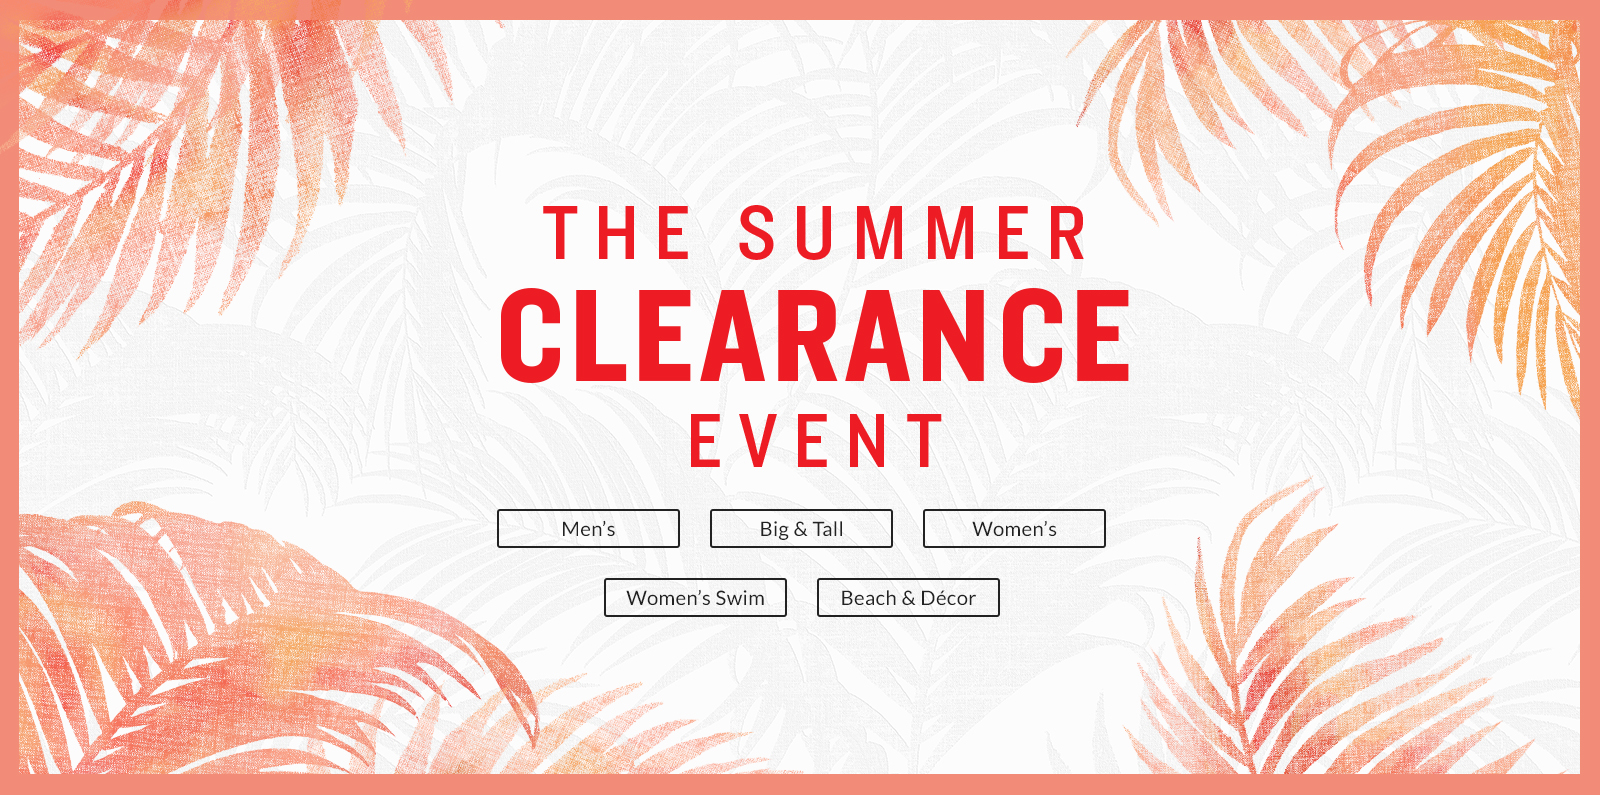 The Summer Clearance Event